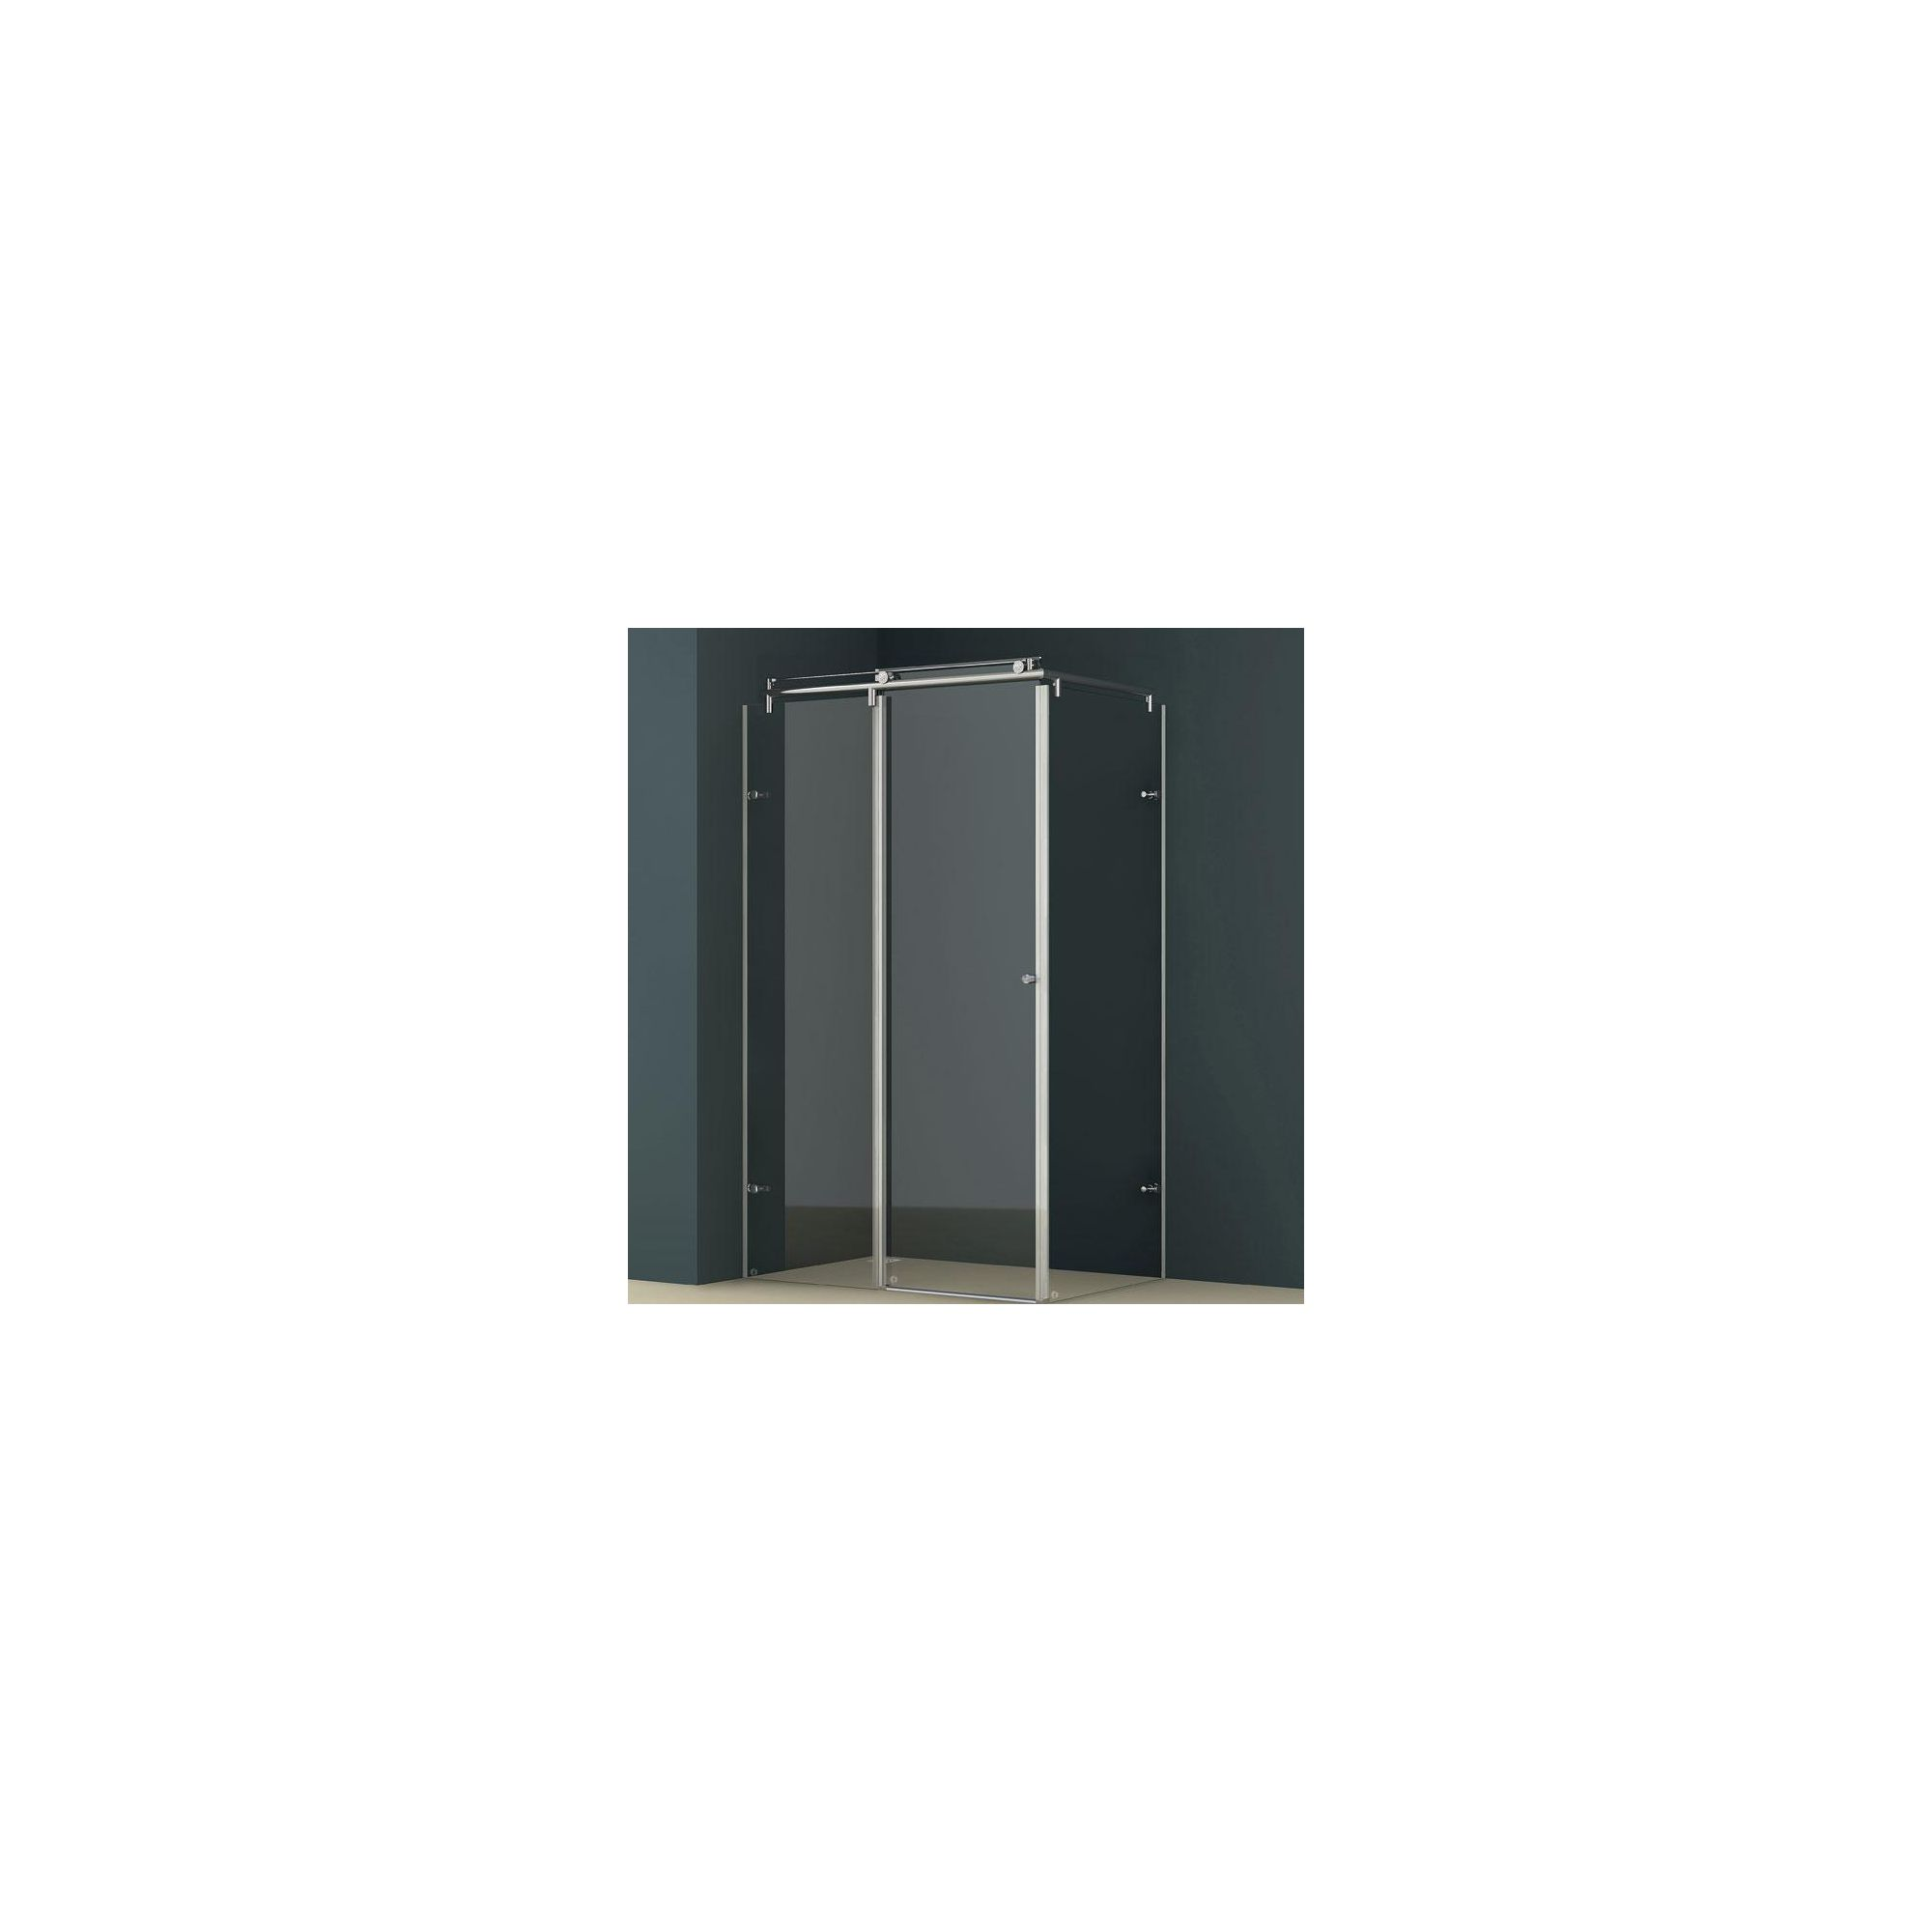 Vessini K Series L-Shape Wet Room Shower Door with Side Panel, 1200mm x 800mm, excluding Tray, 10mm Glass at Tesco Direct